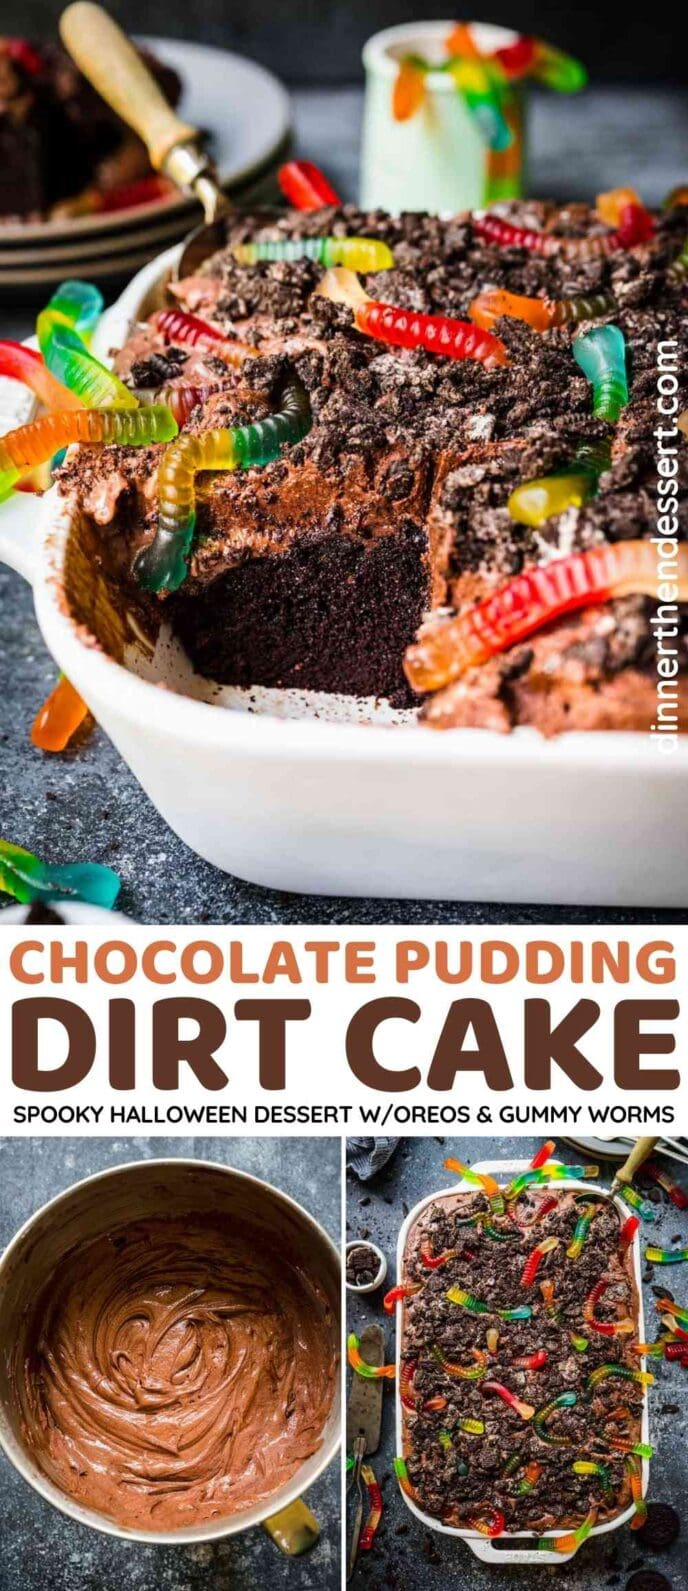 Chocolate Pudding Dirt Cake Collage